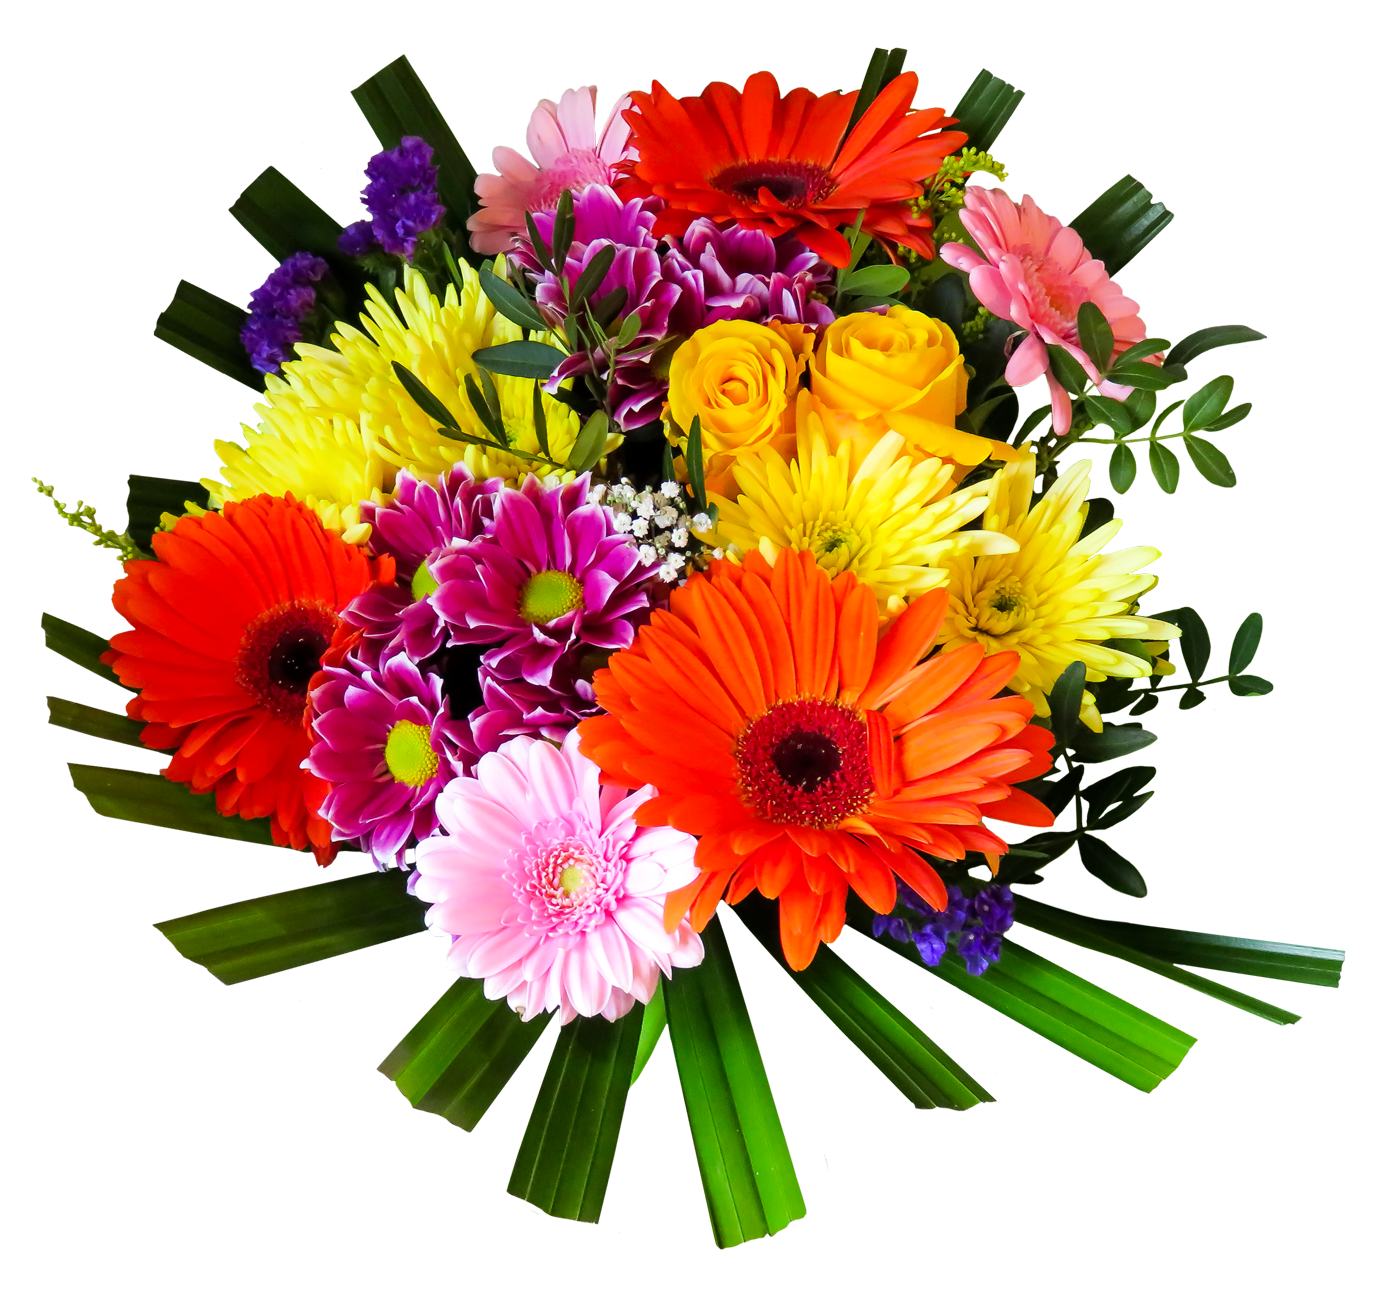 Folower picture banner freeuse stock Flowers PNG Images - PngPix banner freeuse stock